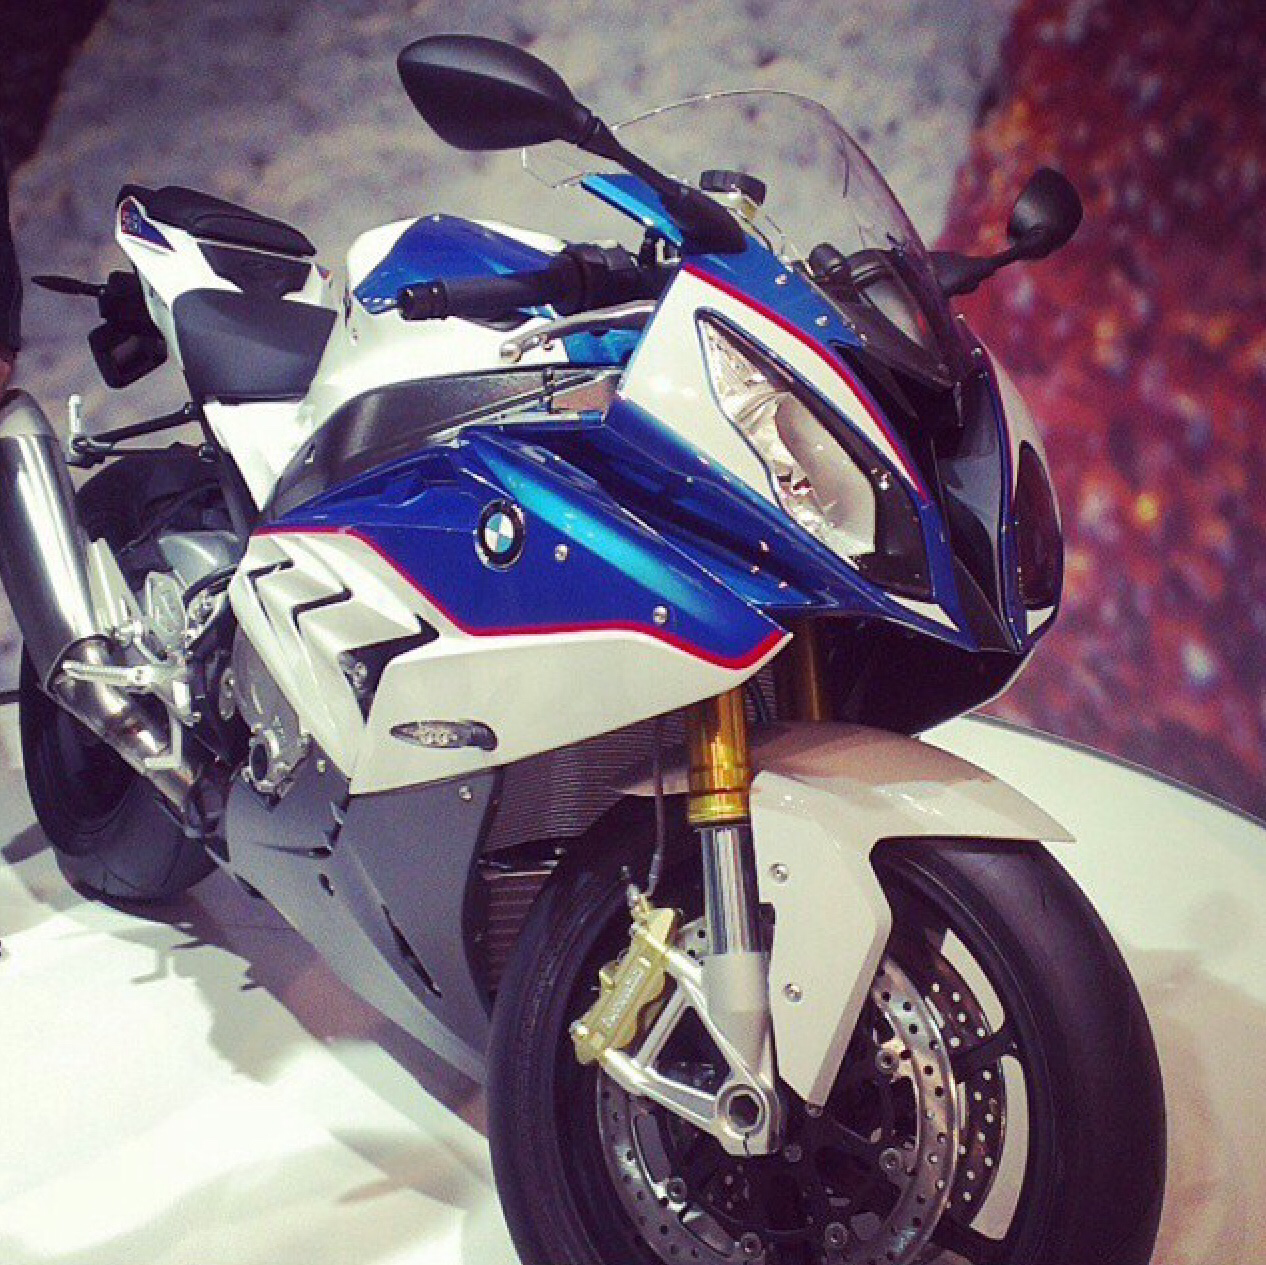 2015 bmw s1000rr unveiled jozi rides. Black Bedroom Furniture Sets. Home Design Ideas